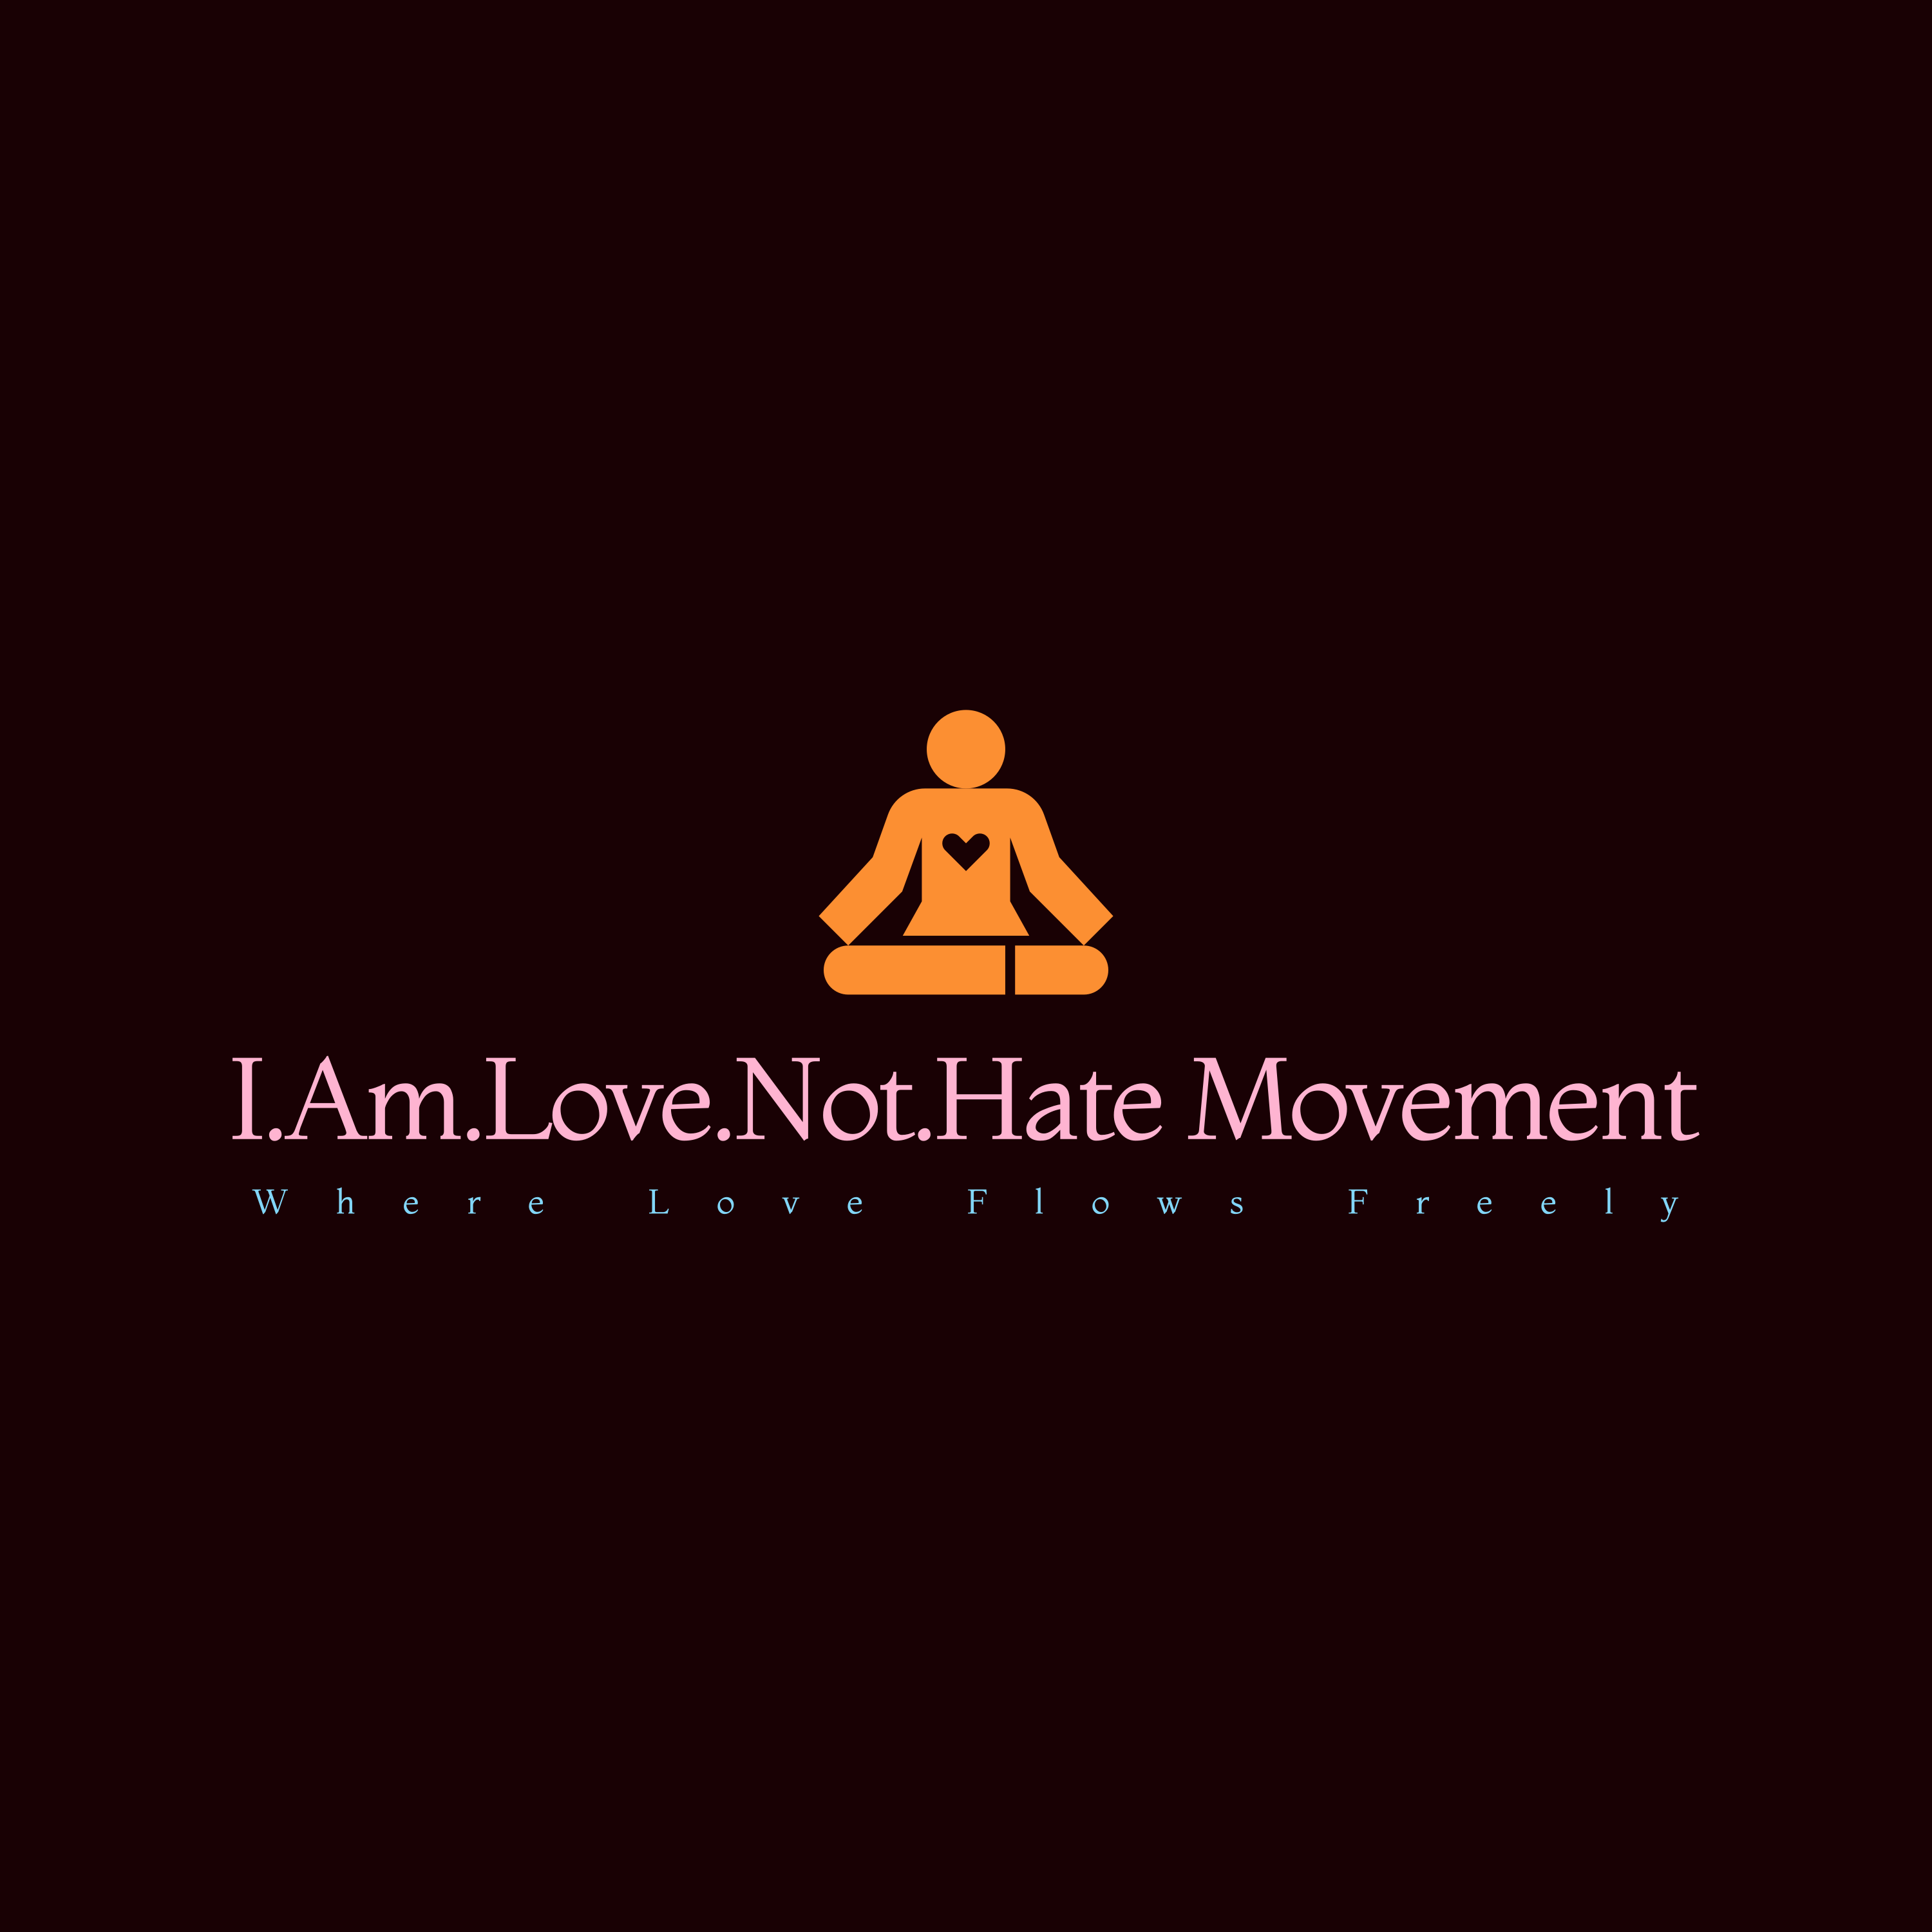 I.Am.Love.Not.Hate Movement